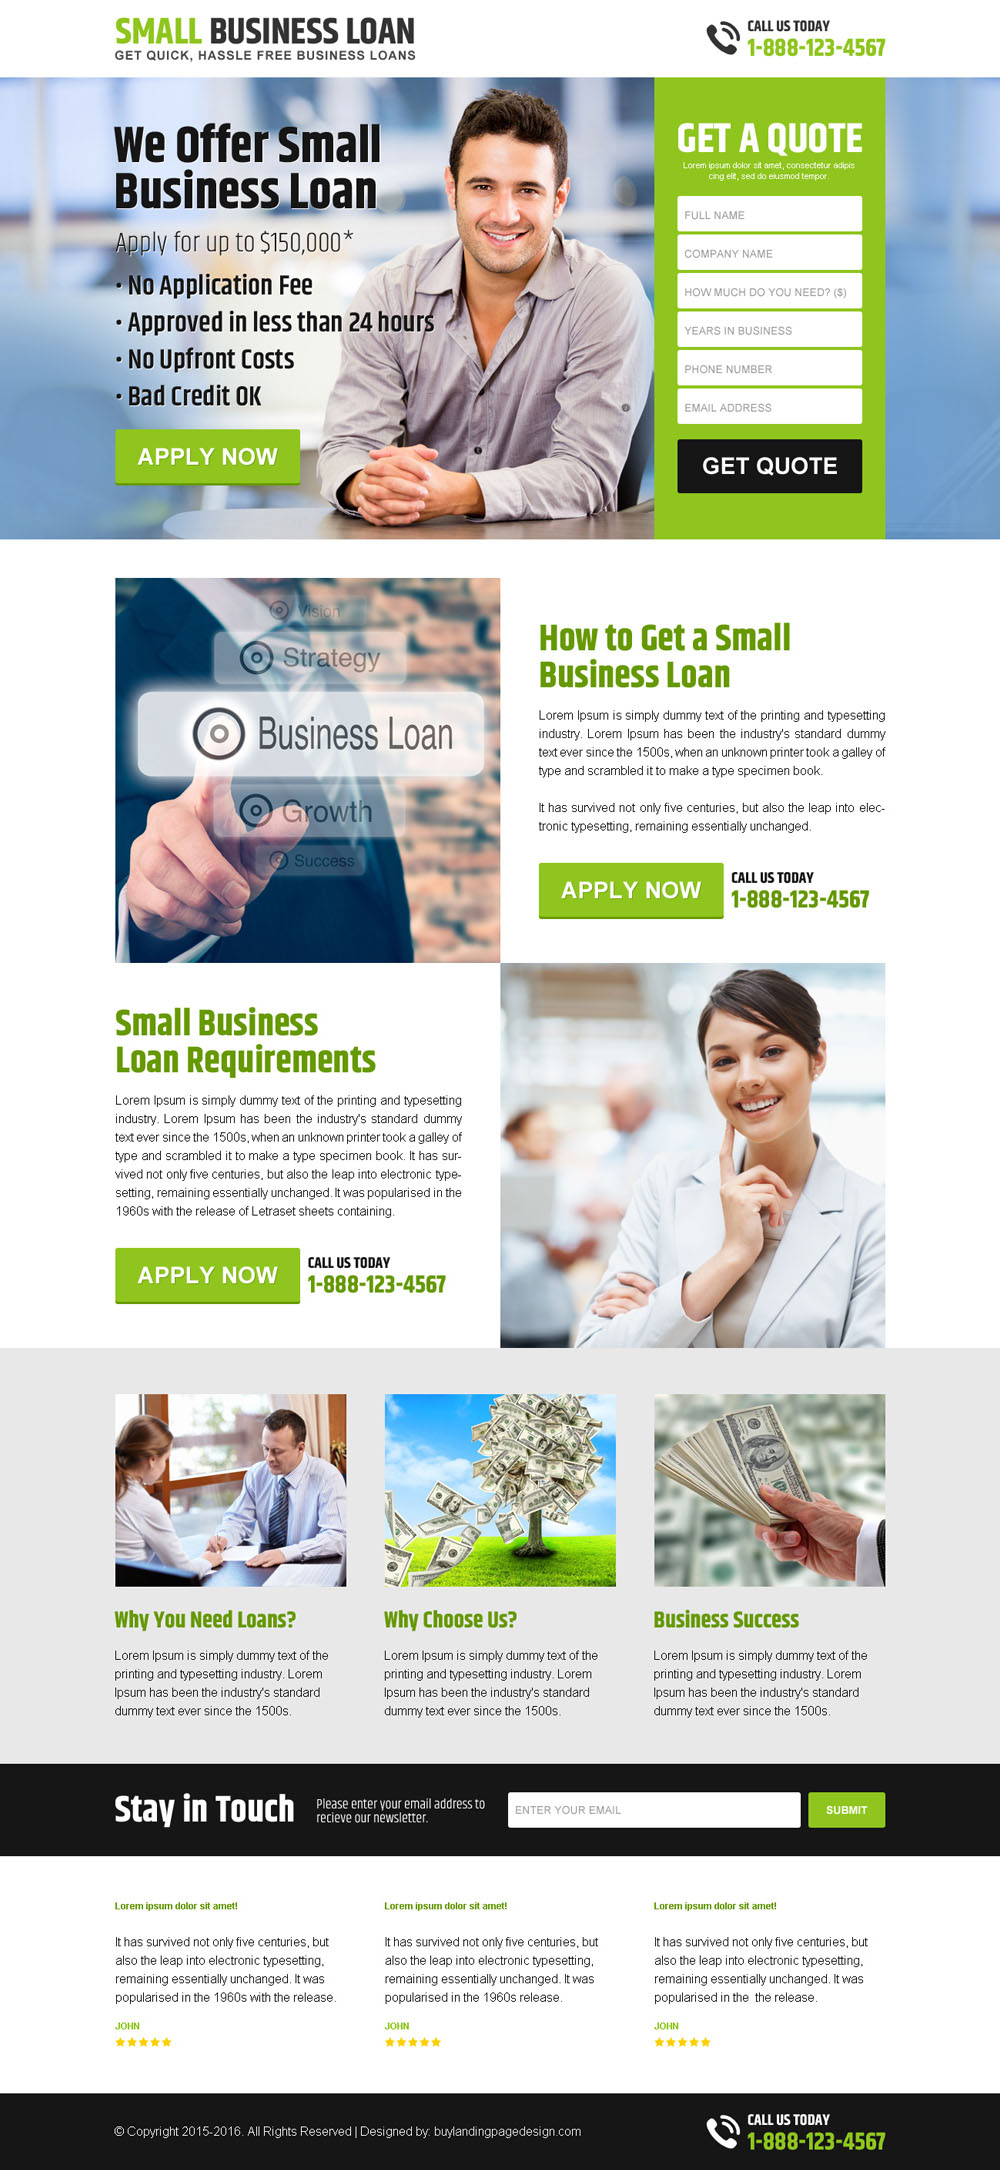 hassle-free-small-business-loan-lead-capture-converting-landing-page-002